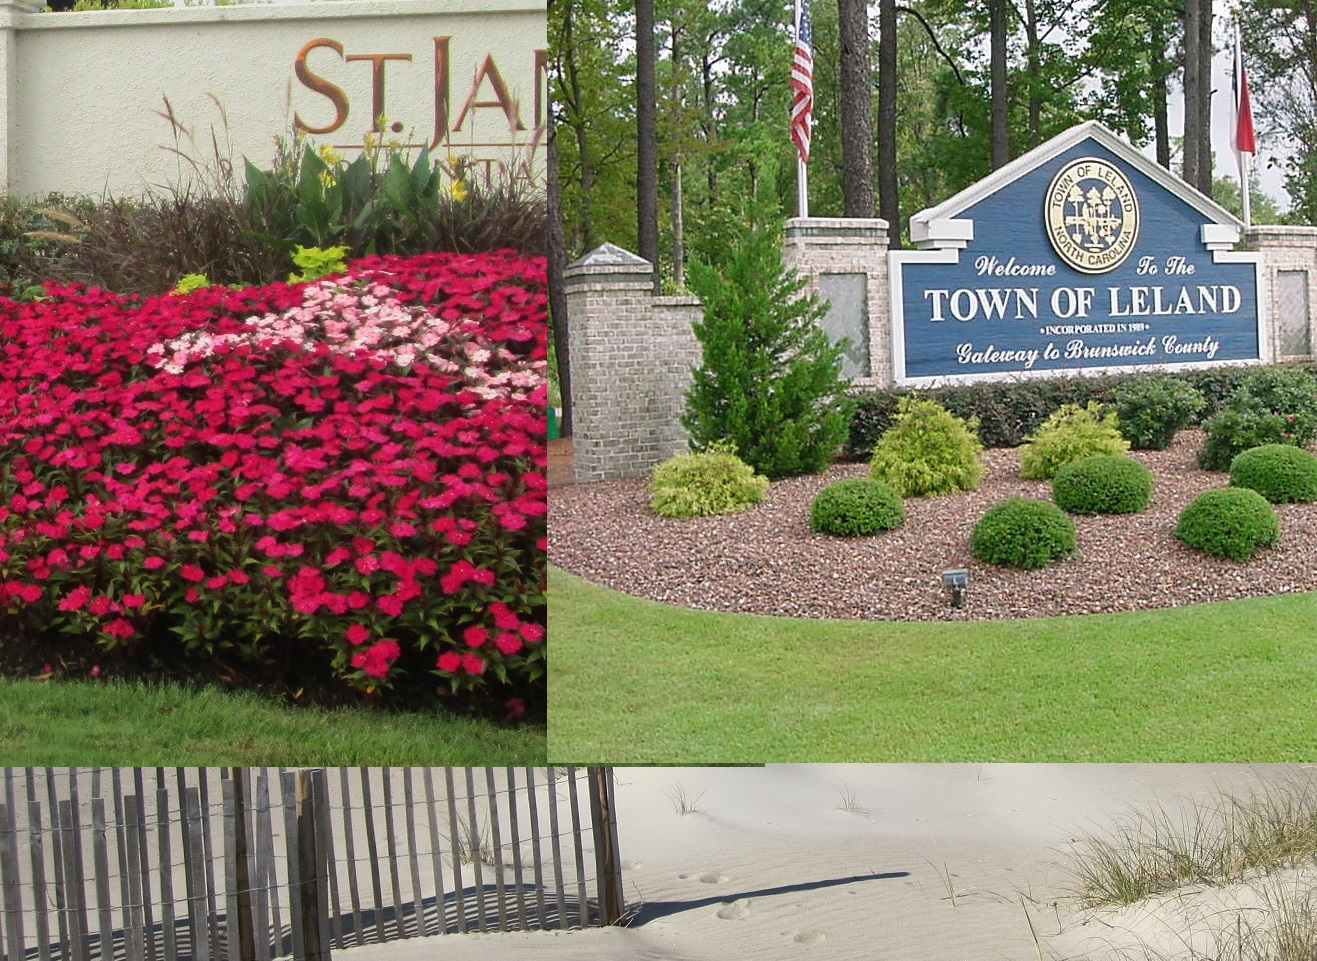 Southeastern NC communities and small towns